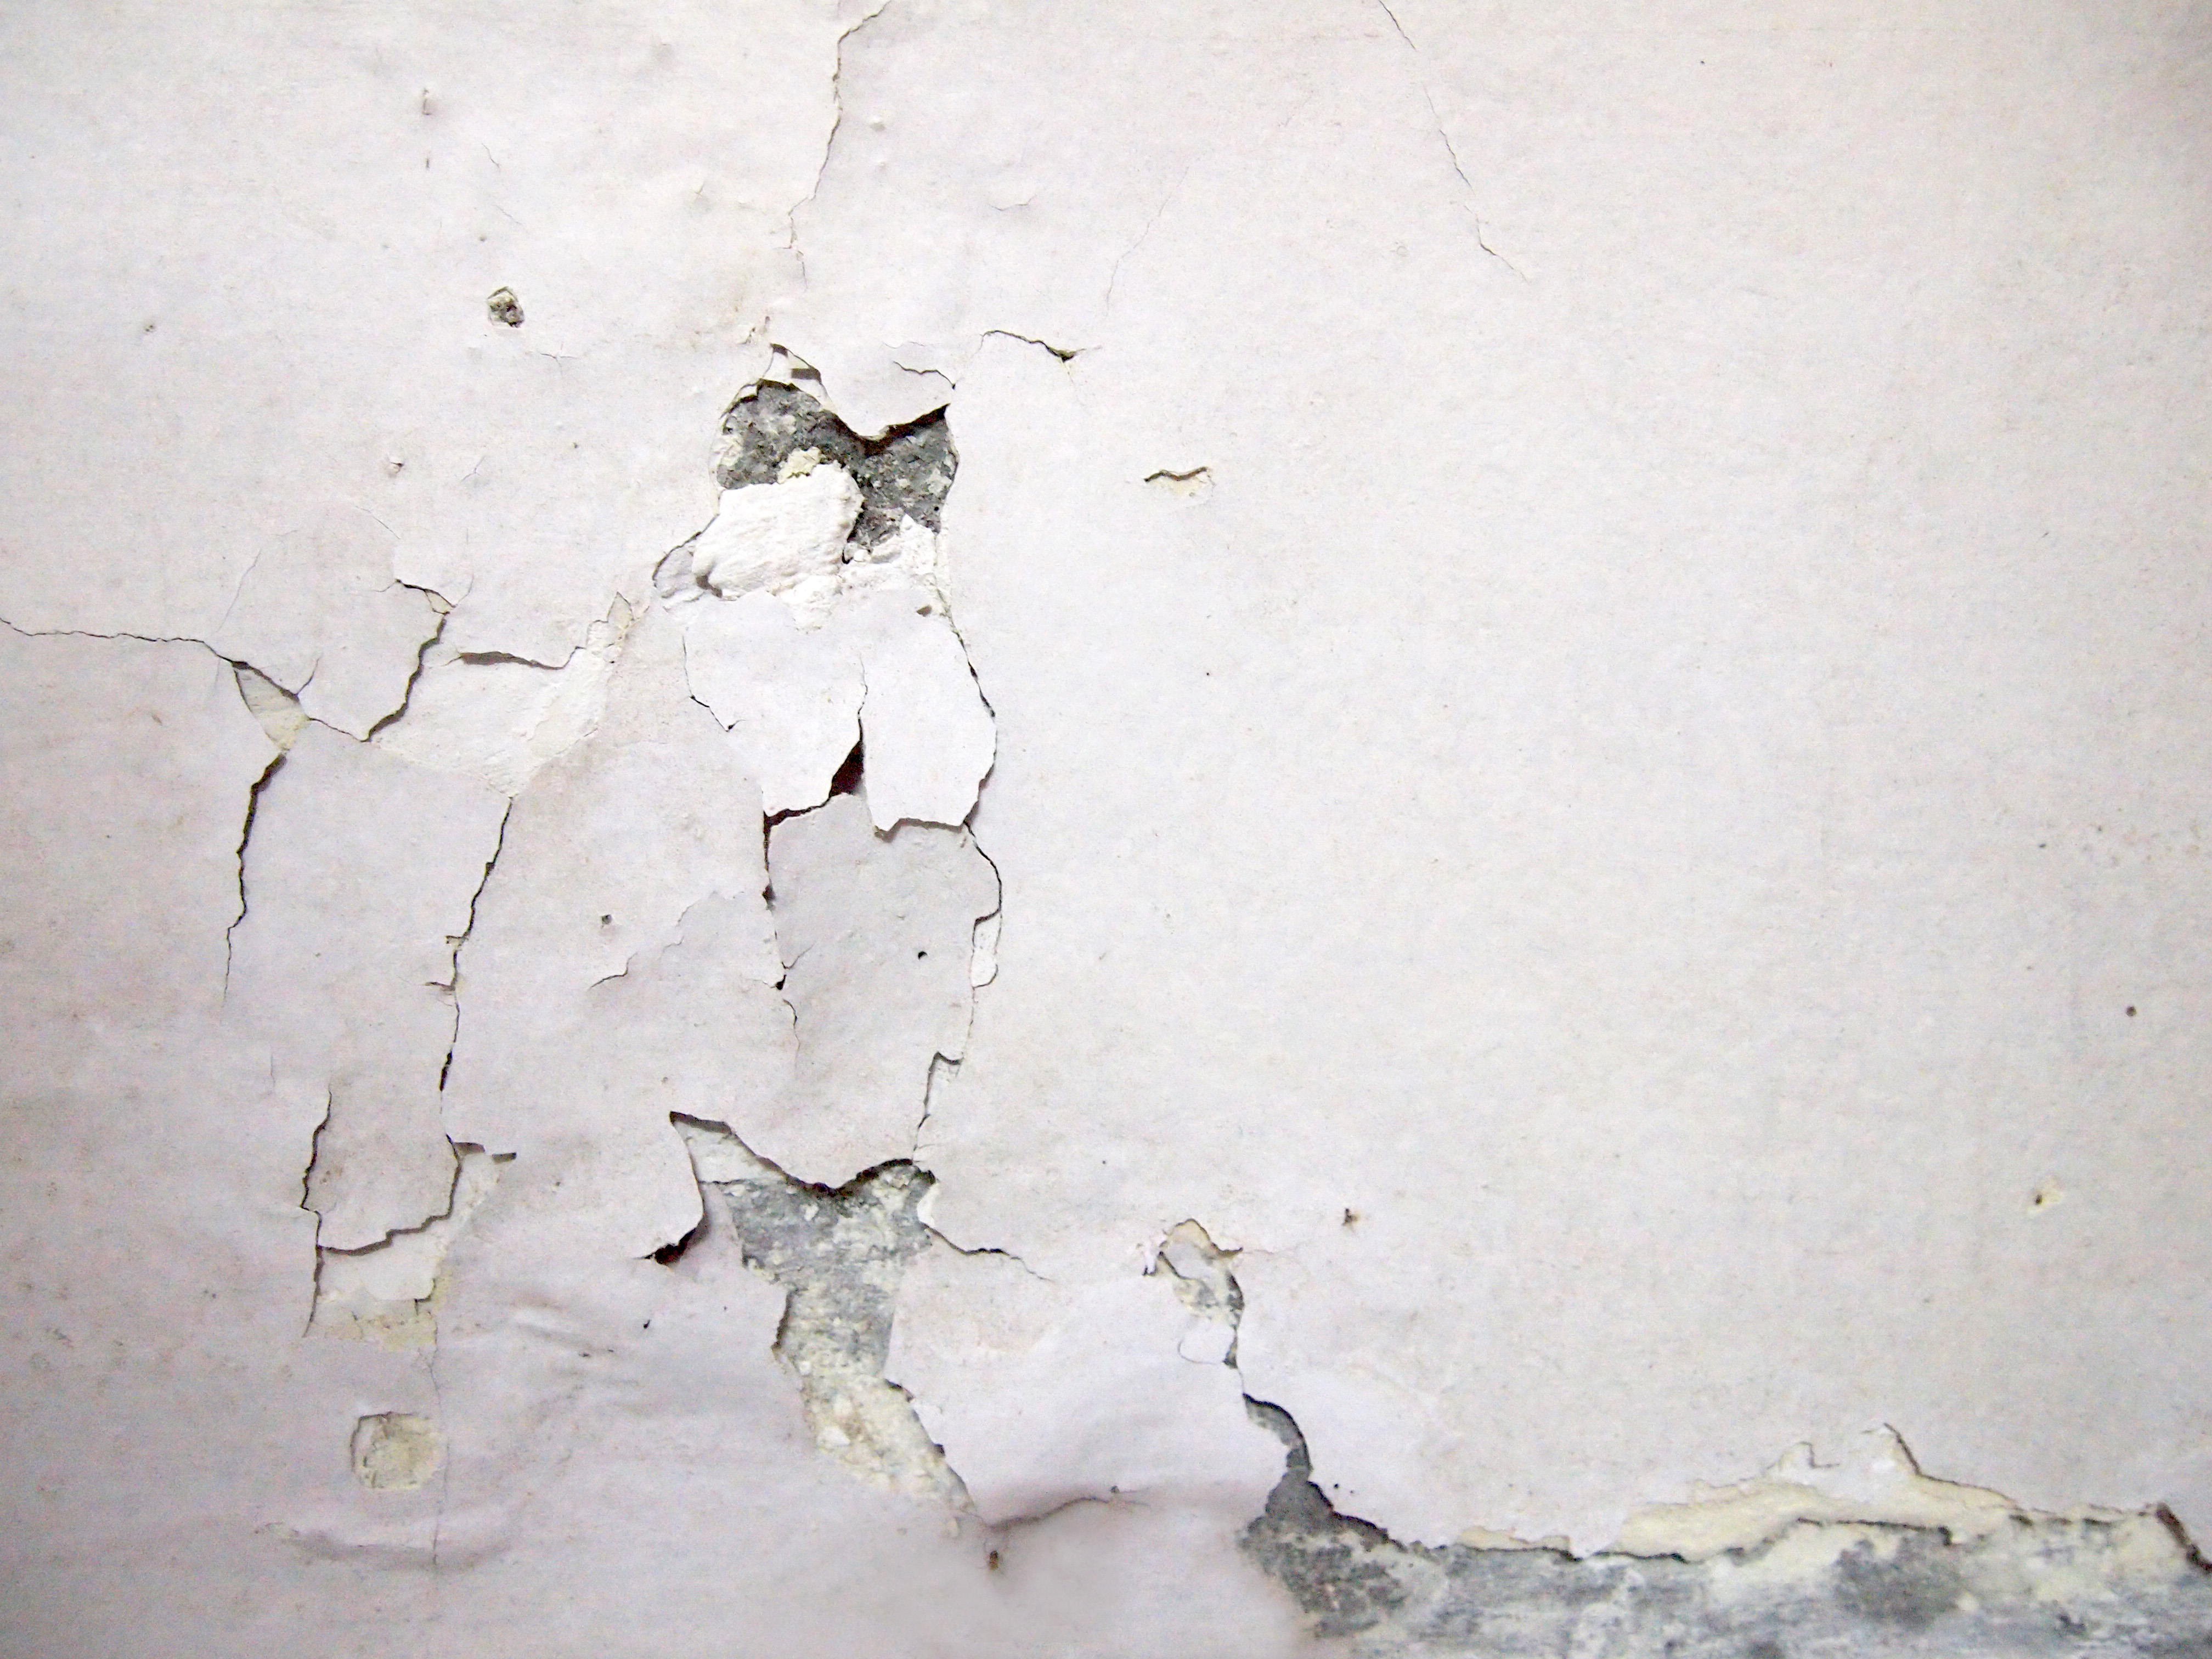 How to patch chipped paint on wall